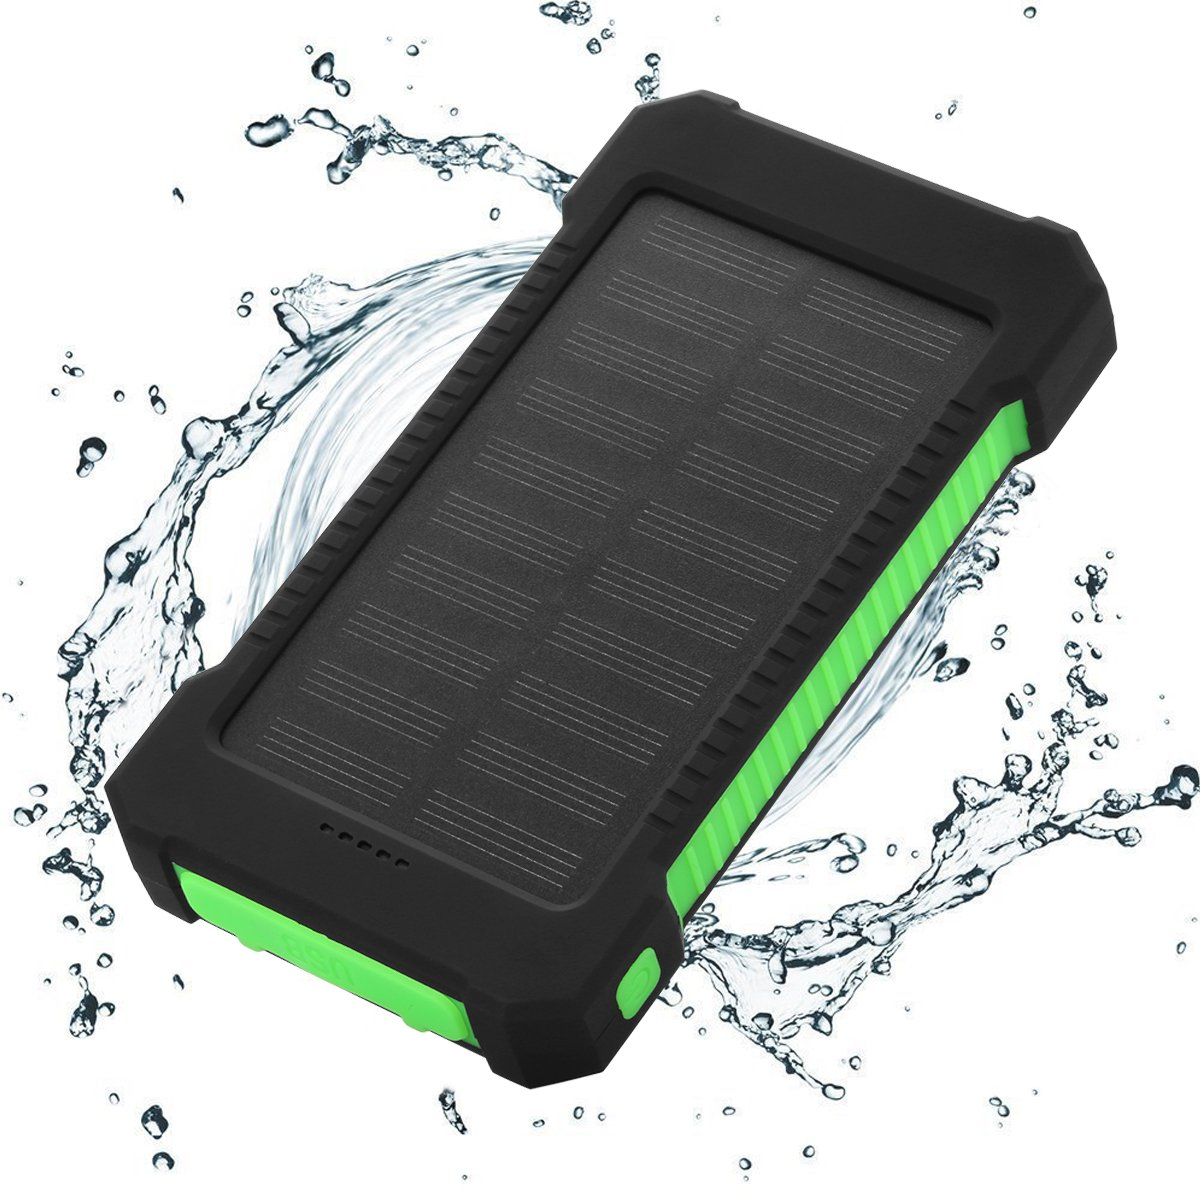 FLOUREON 10,000mAh Solar charger Power Bank Portable Phone Charger External  Battery Charger with Dual 2 1A USB LED Flashlight Output Charging forSmart